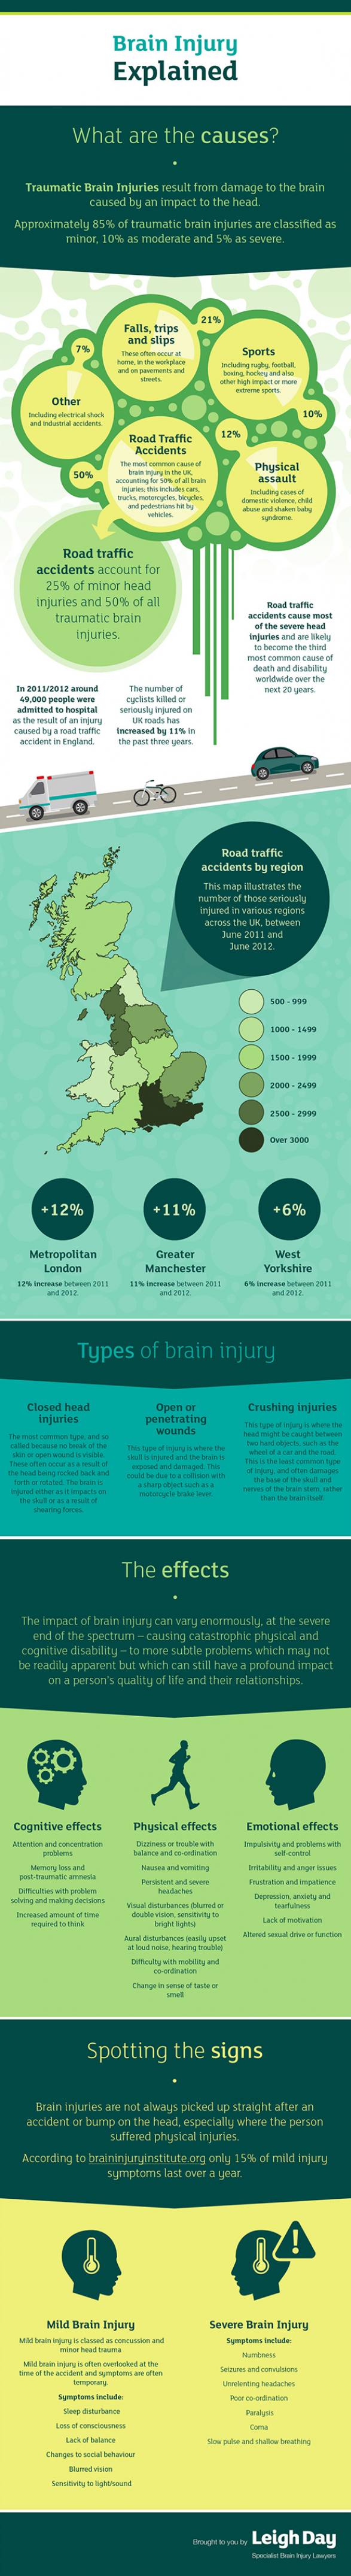 Brain Injury Explained